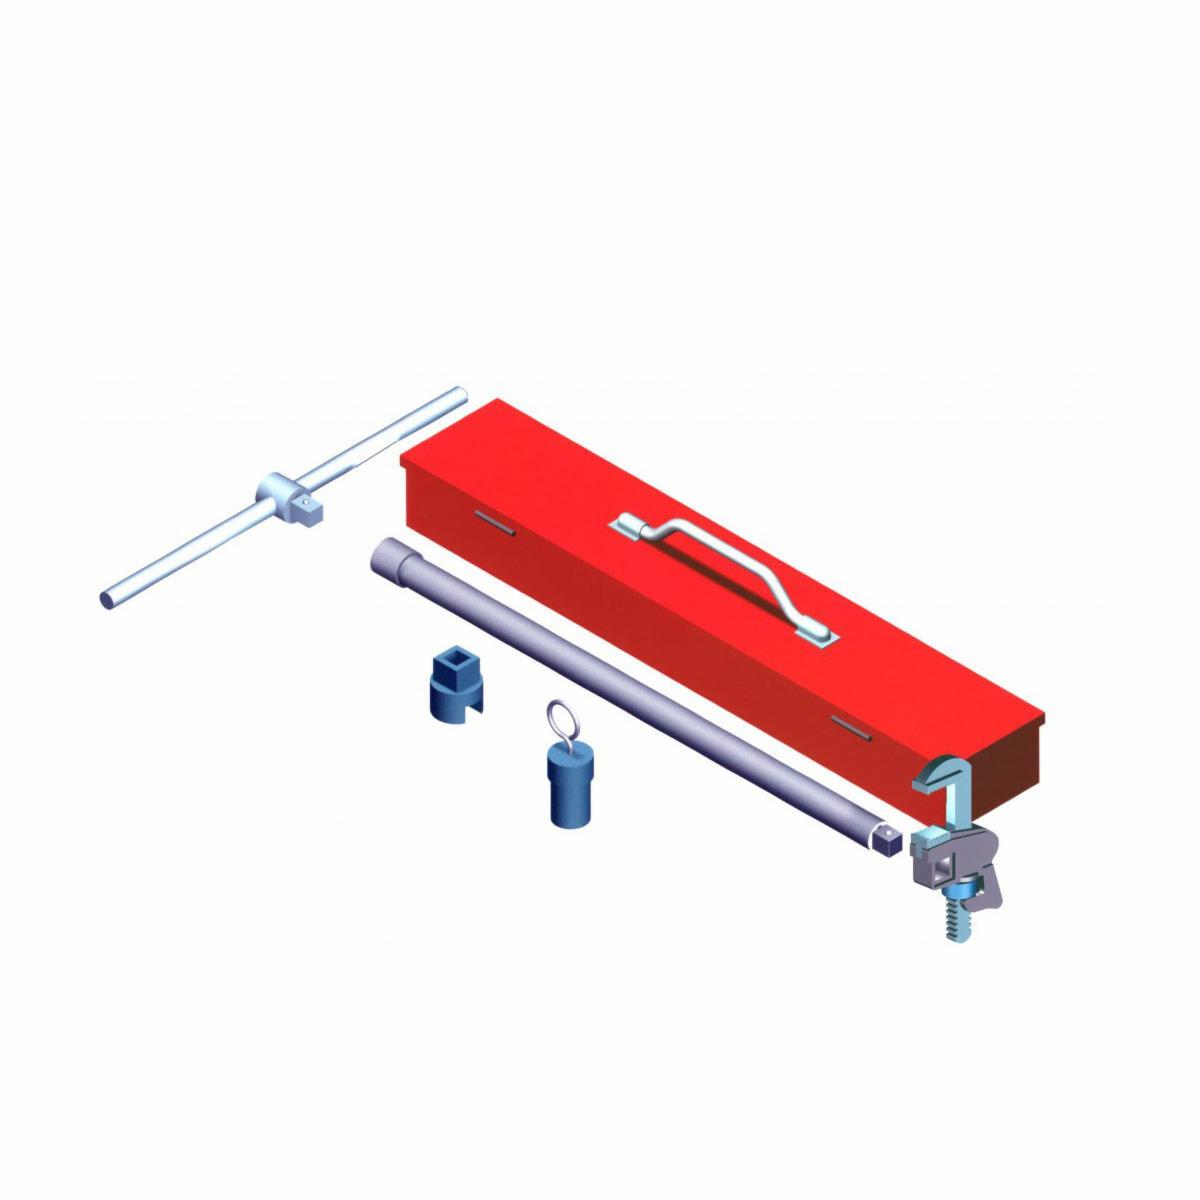 Perfecto 1700-SD Right Angle Pipe Wrench (Super Deluxe Kit)